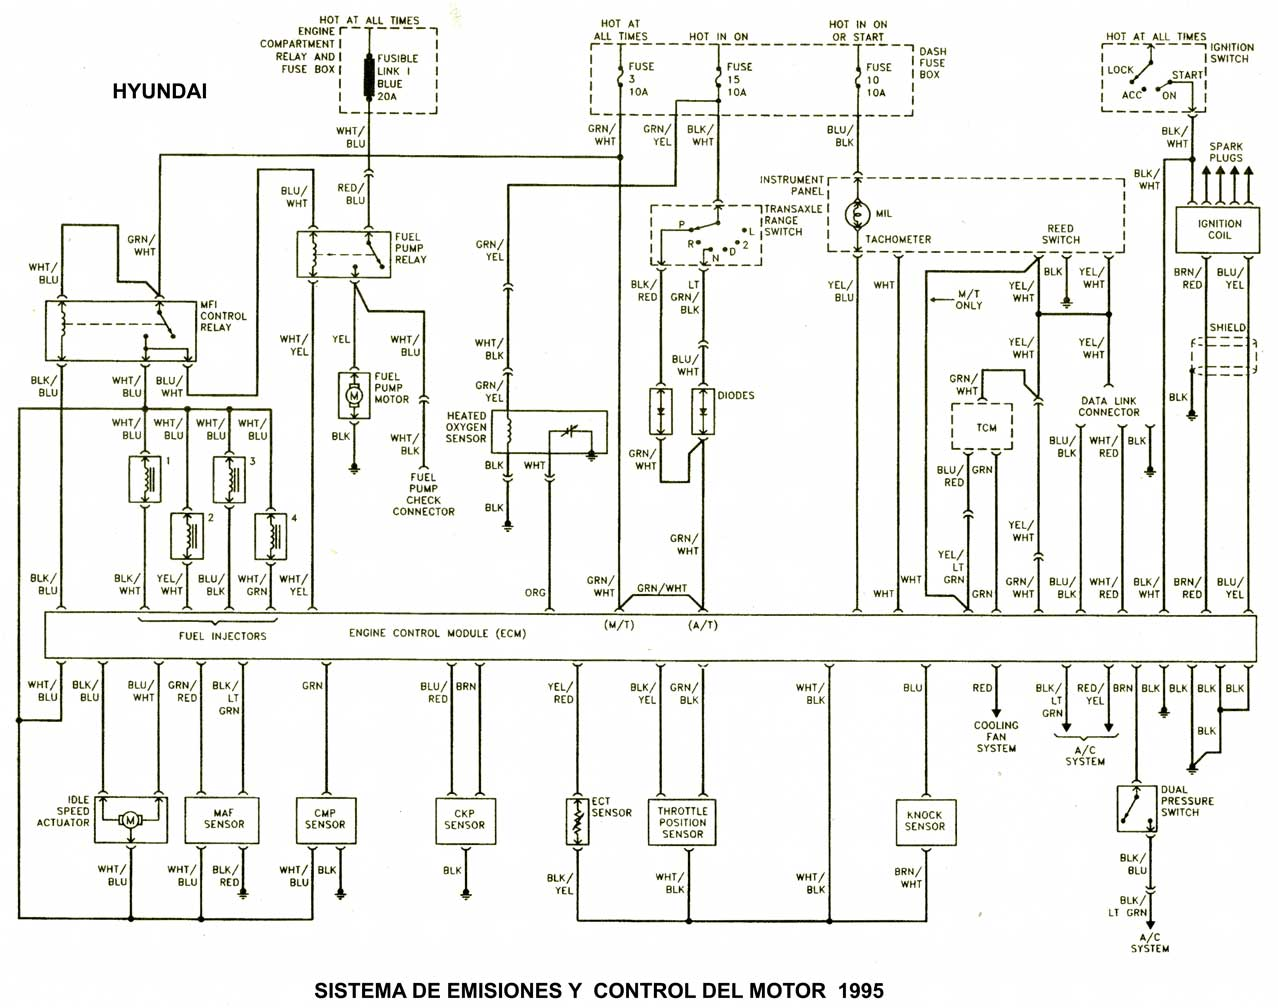 97 Lumina Headlight Wiring Diagram Diagrams 1989 Gmc Sierra 1500 Fuse Box 37 Gm Switch Basic